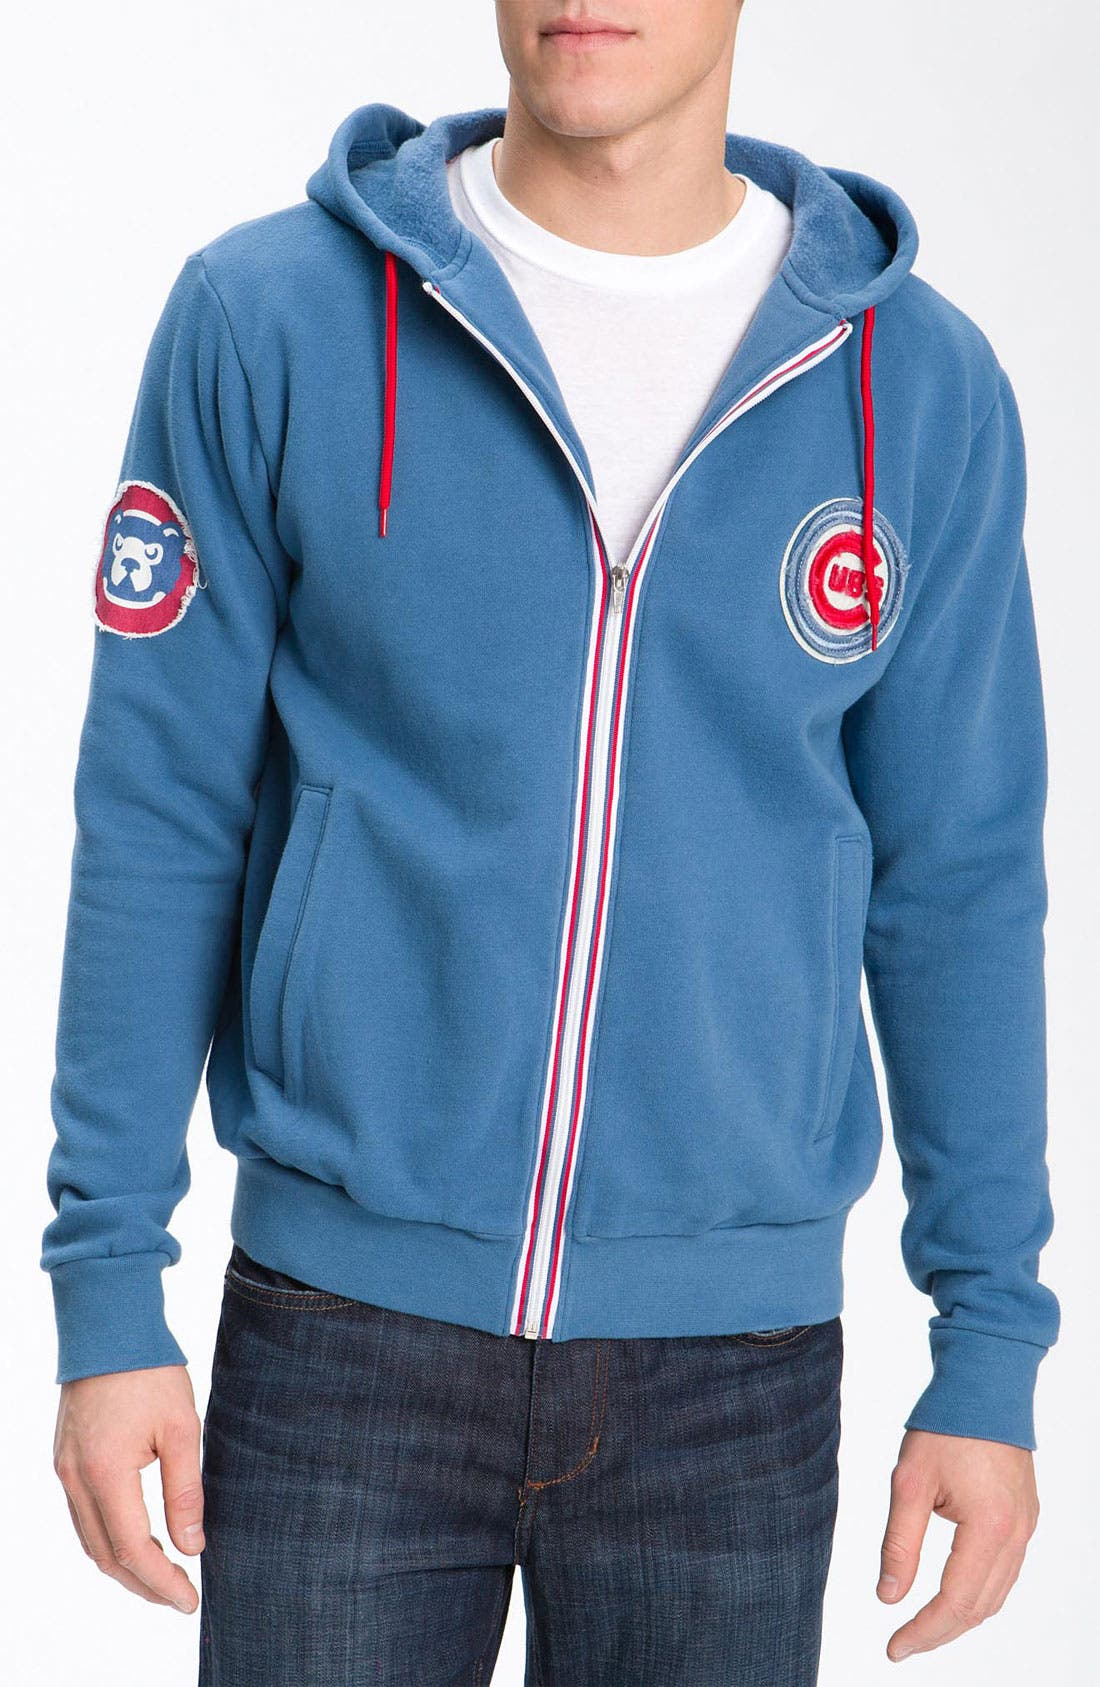 Alternate Image 1 Selected - Wright & Ditson 'Chicago Cubs' Hoodie